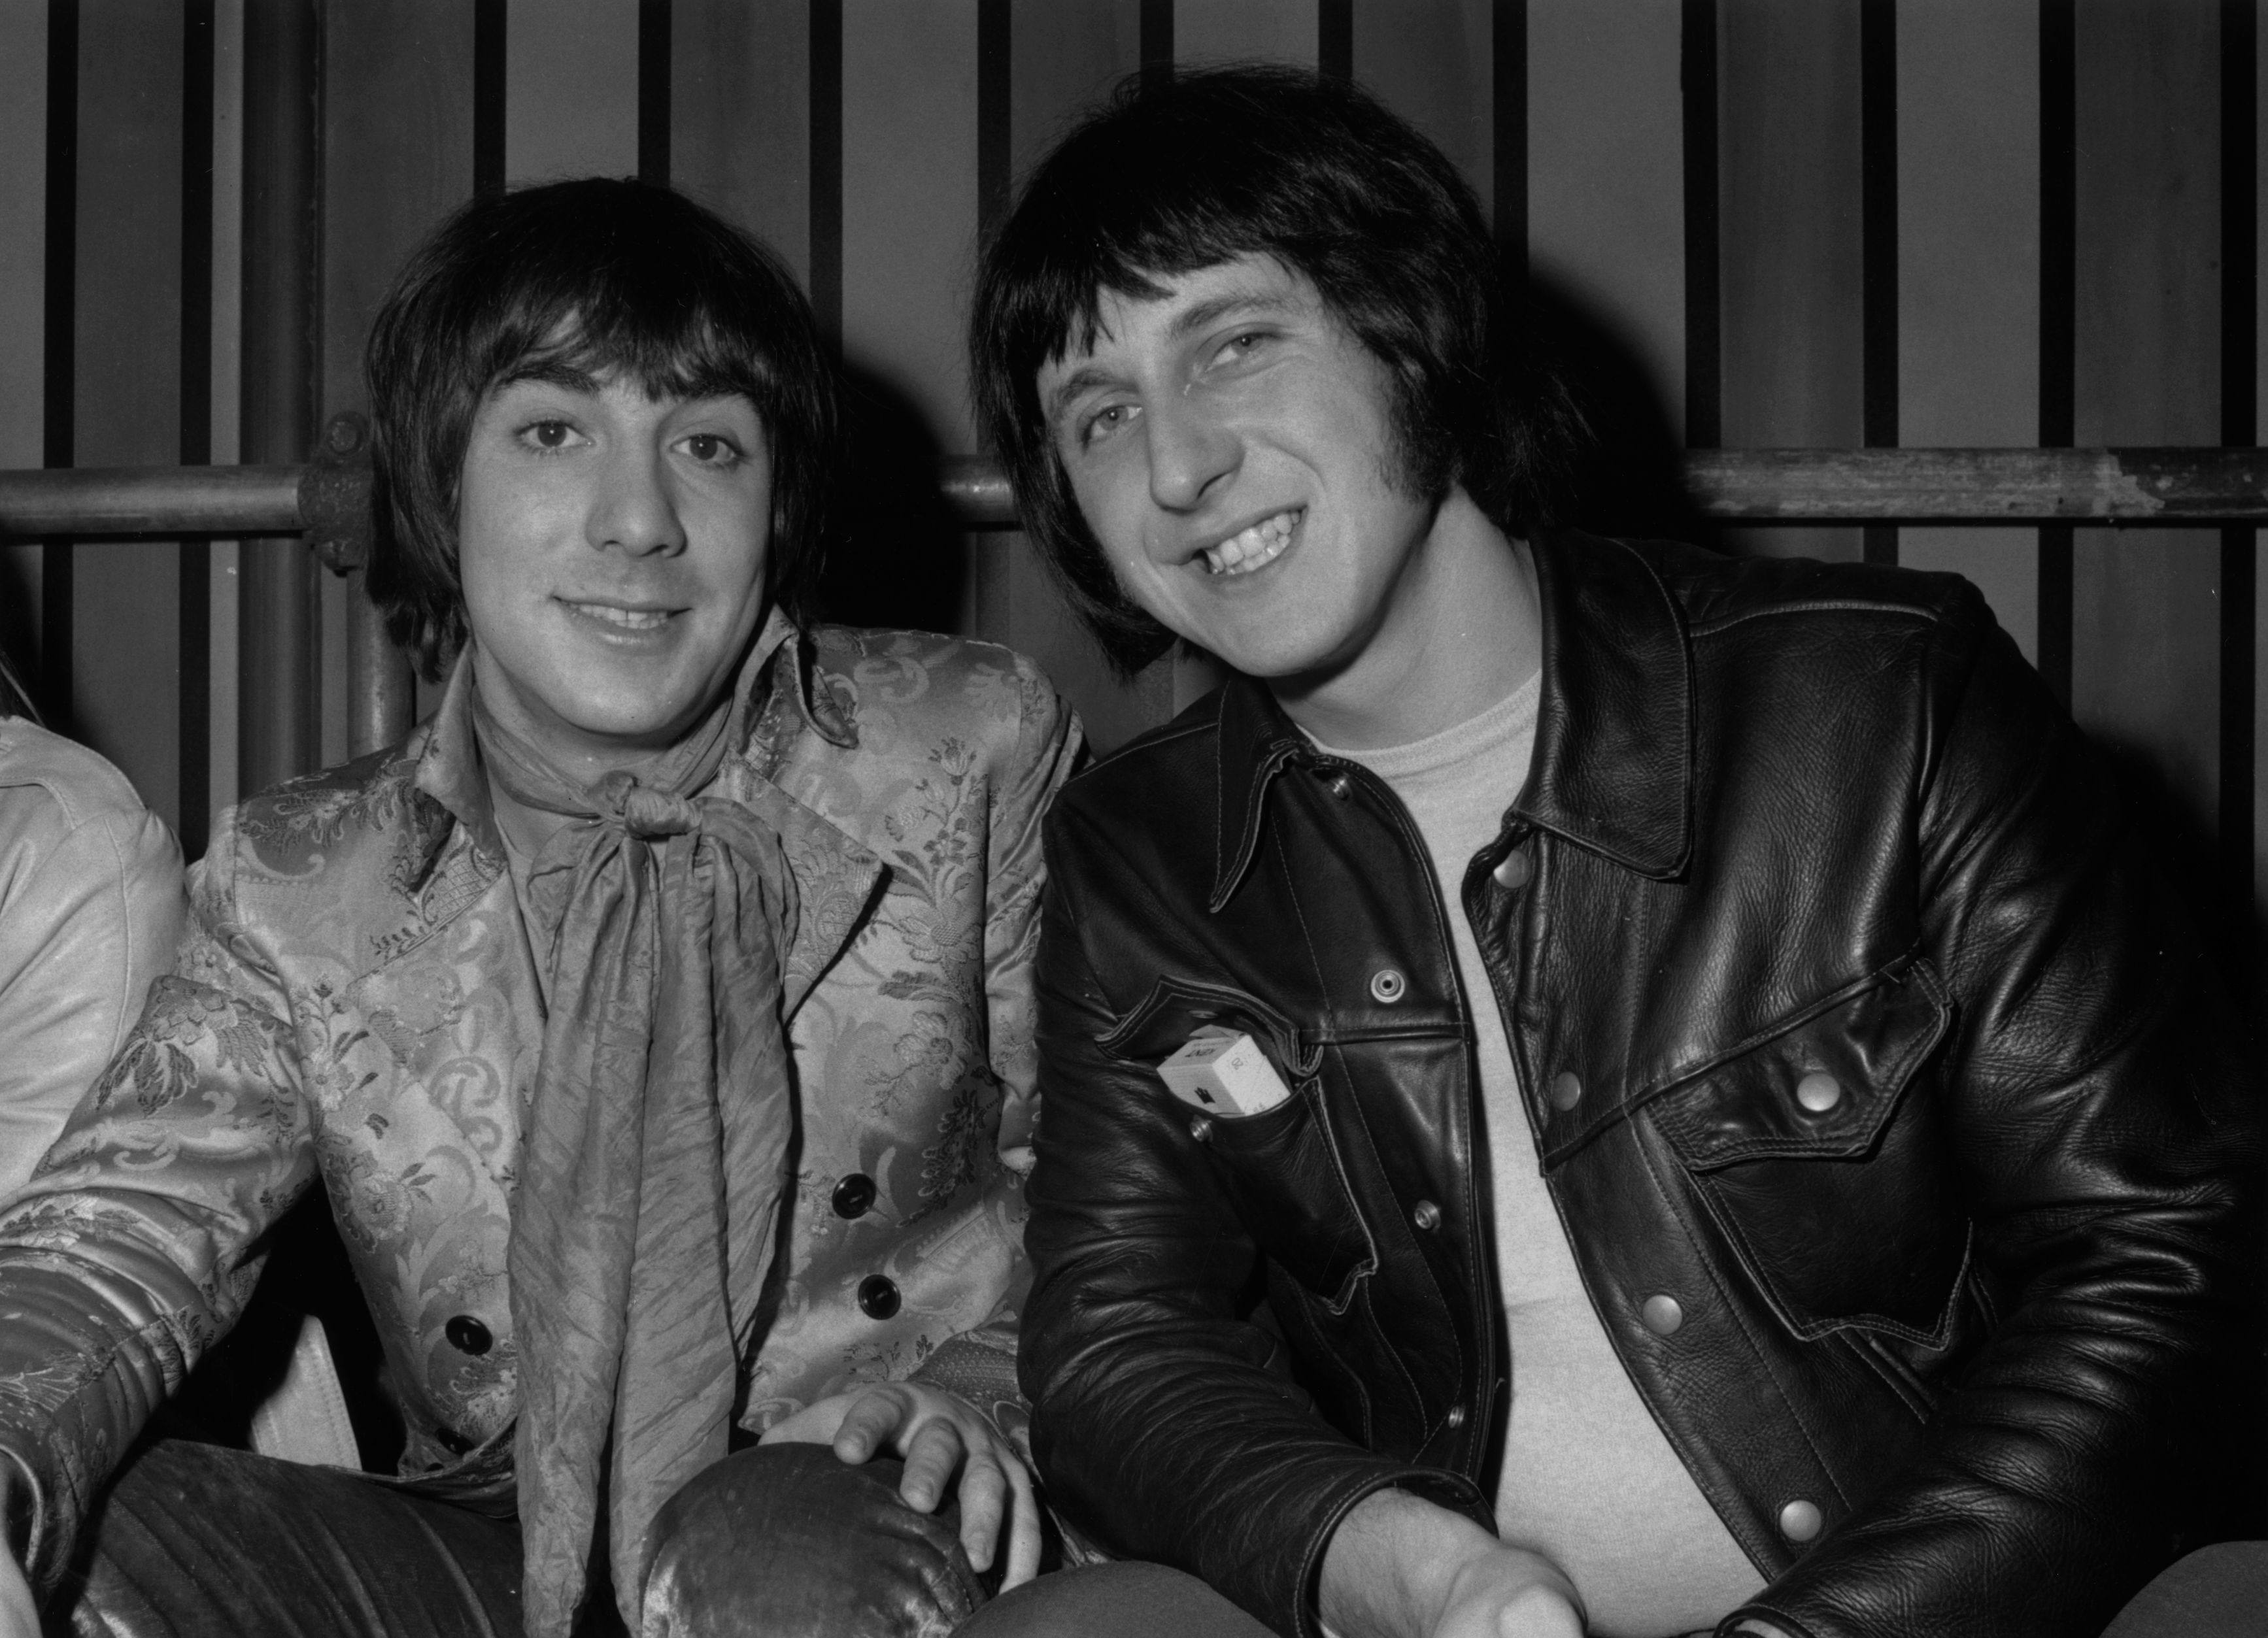 10th December 1968:  Keith Moon (1947-1978, left) and John Entwistle (1944 - 2002) of 'The Who' at Internel Studios in Stonebridge Park, Wembley, where the Rolling Stones are shooting a TV spectacular, 'The Rolling Stone Rock 'n Roll Circus show'.  (Photo by Mike Lawn/Fox Photos/Getty Images)